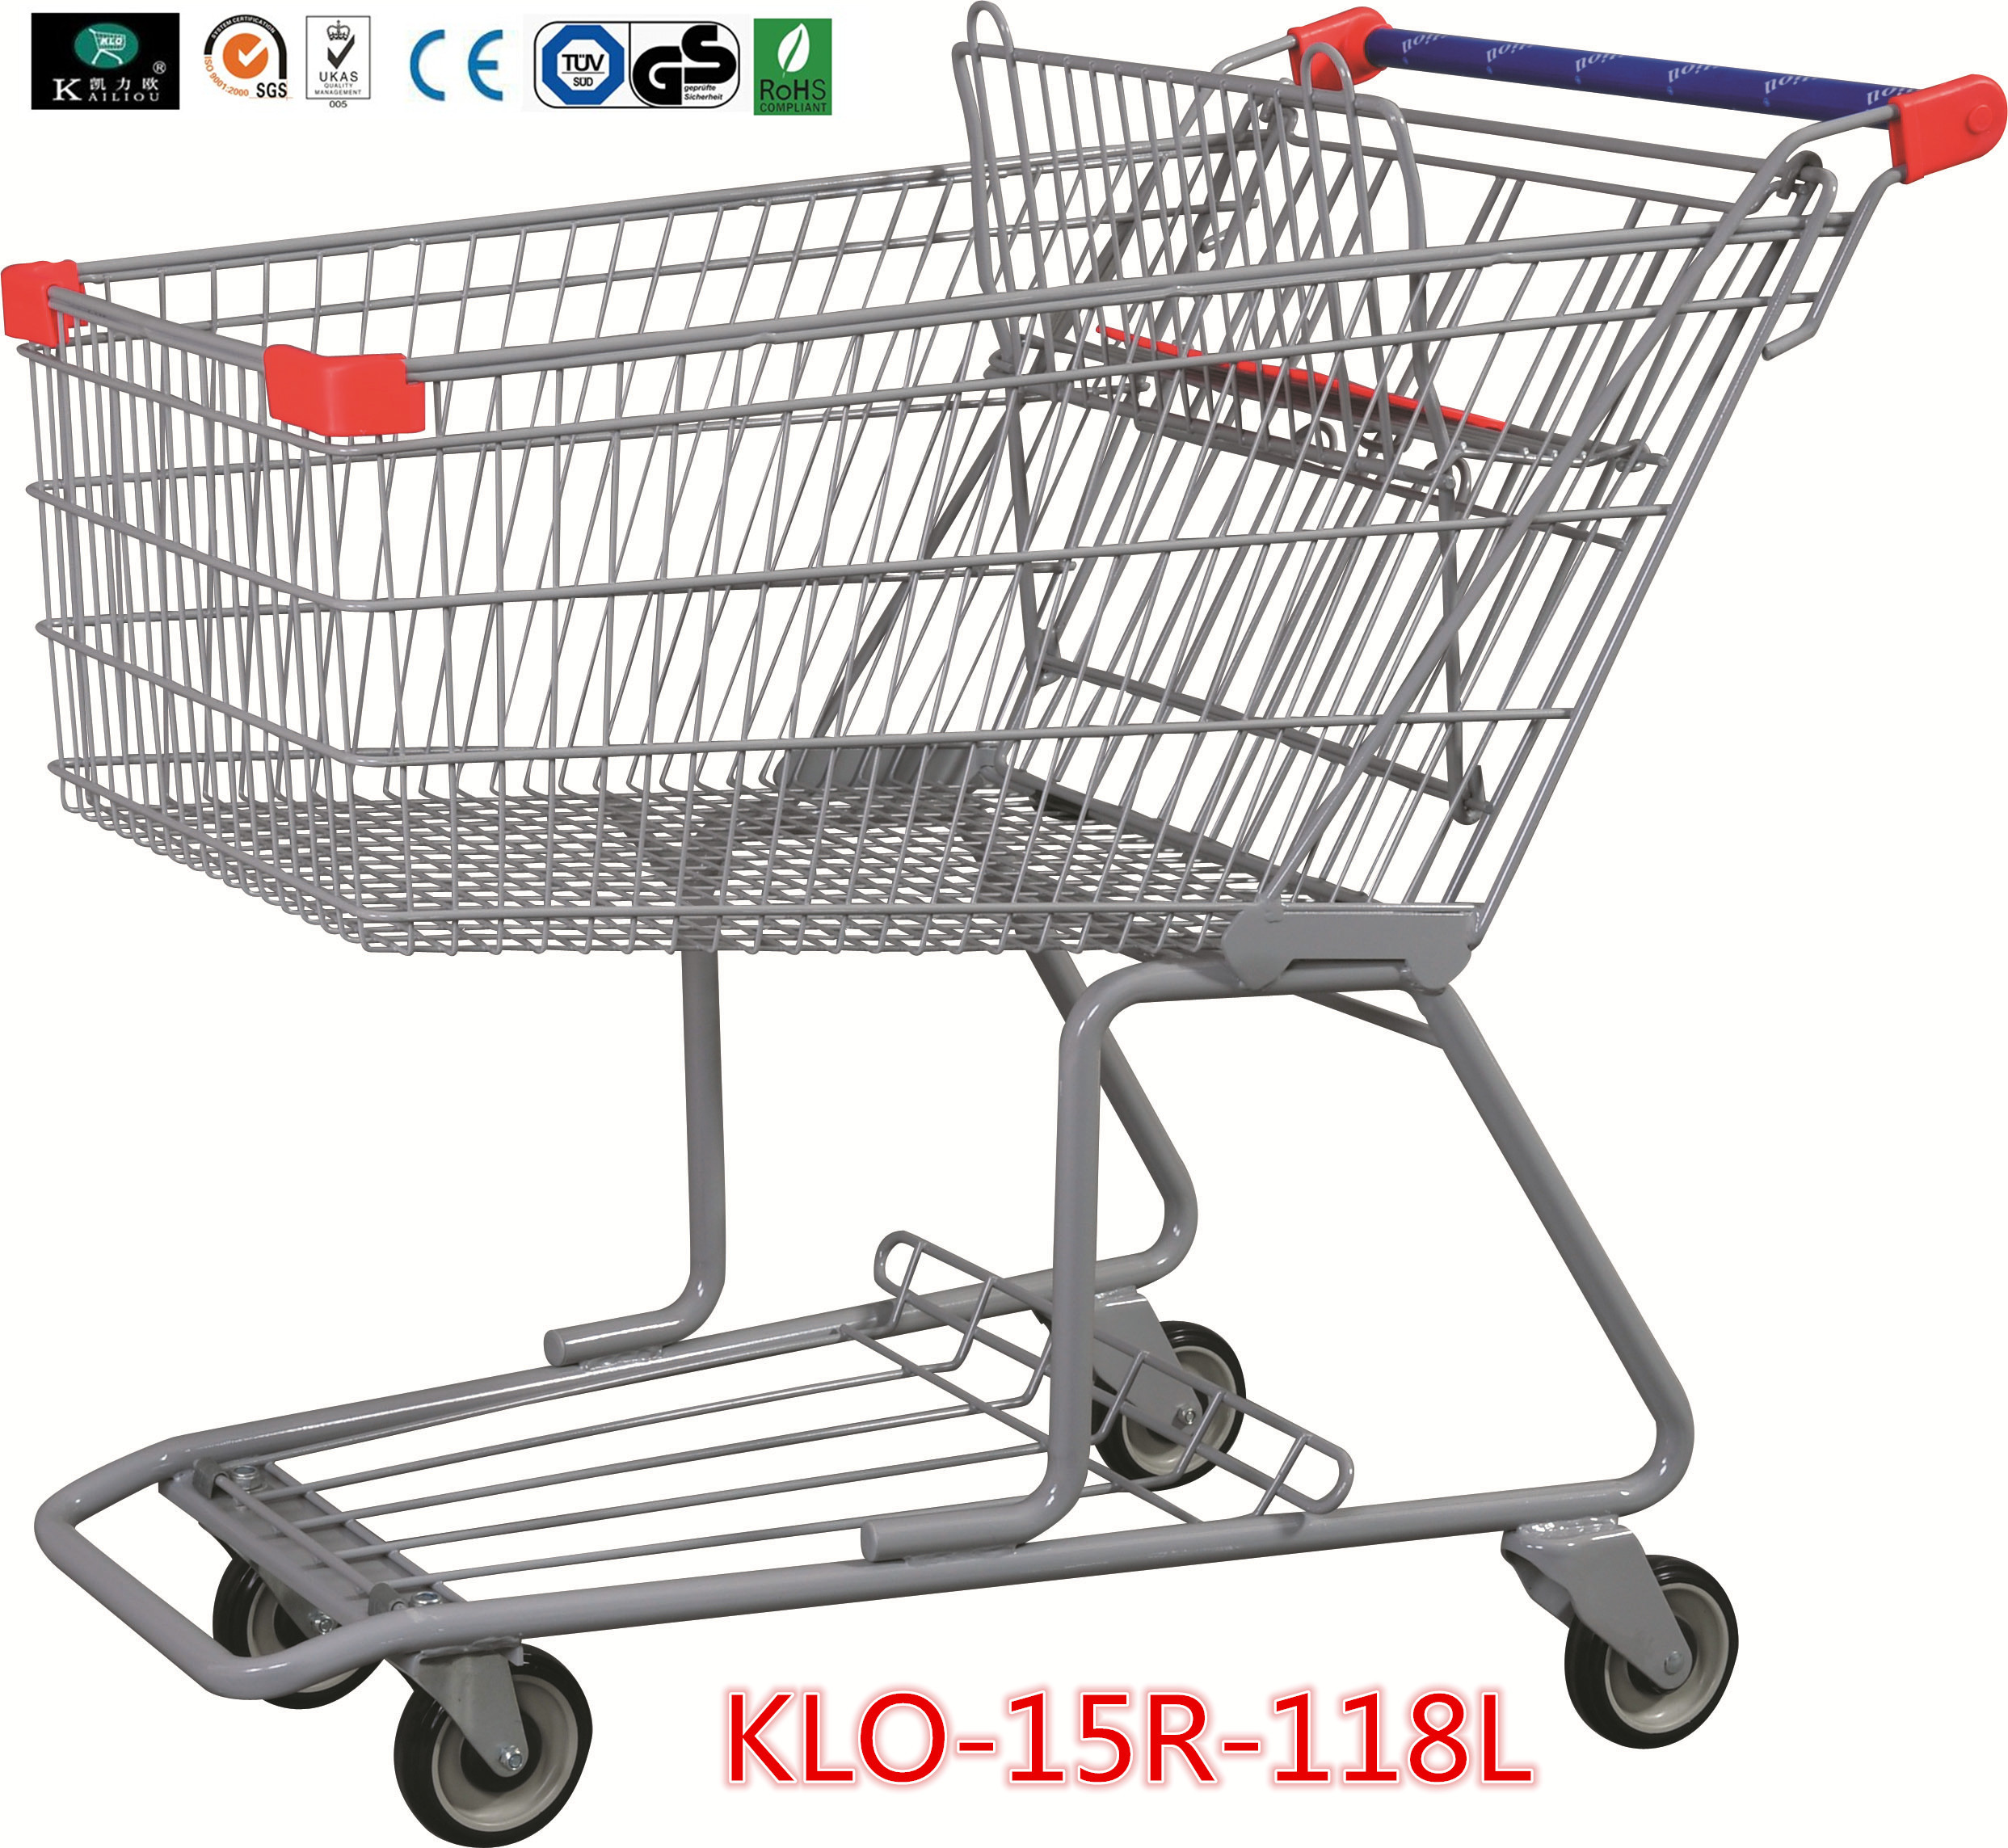 180L Advertisement Metal Grocery Store Shopping Cart With Wheels 1080x640x1075mm